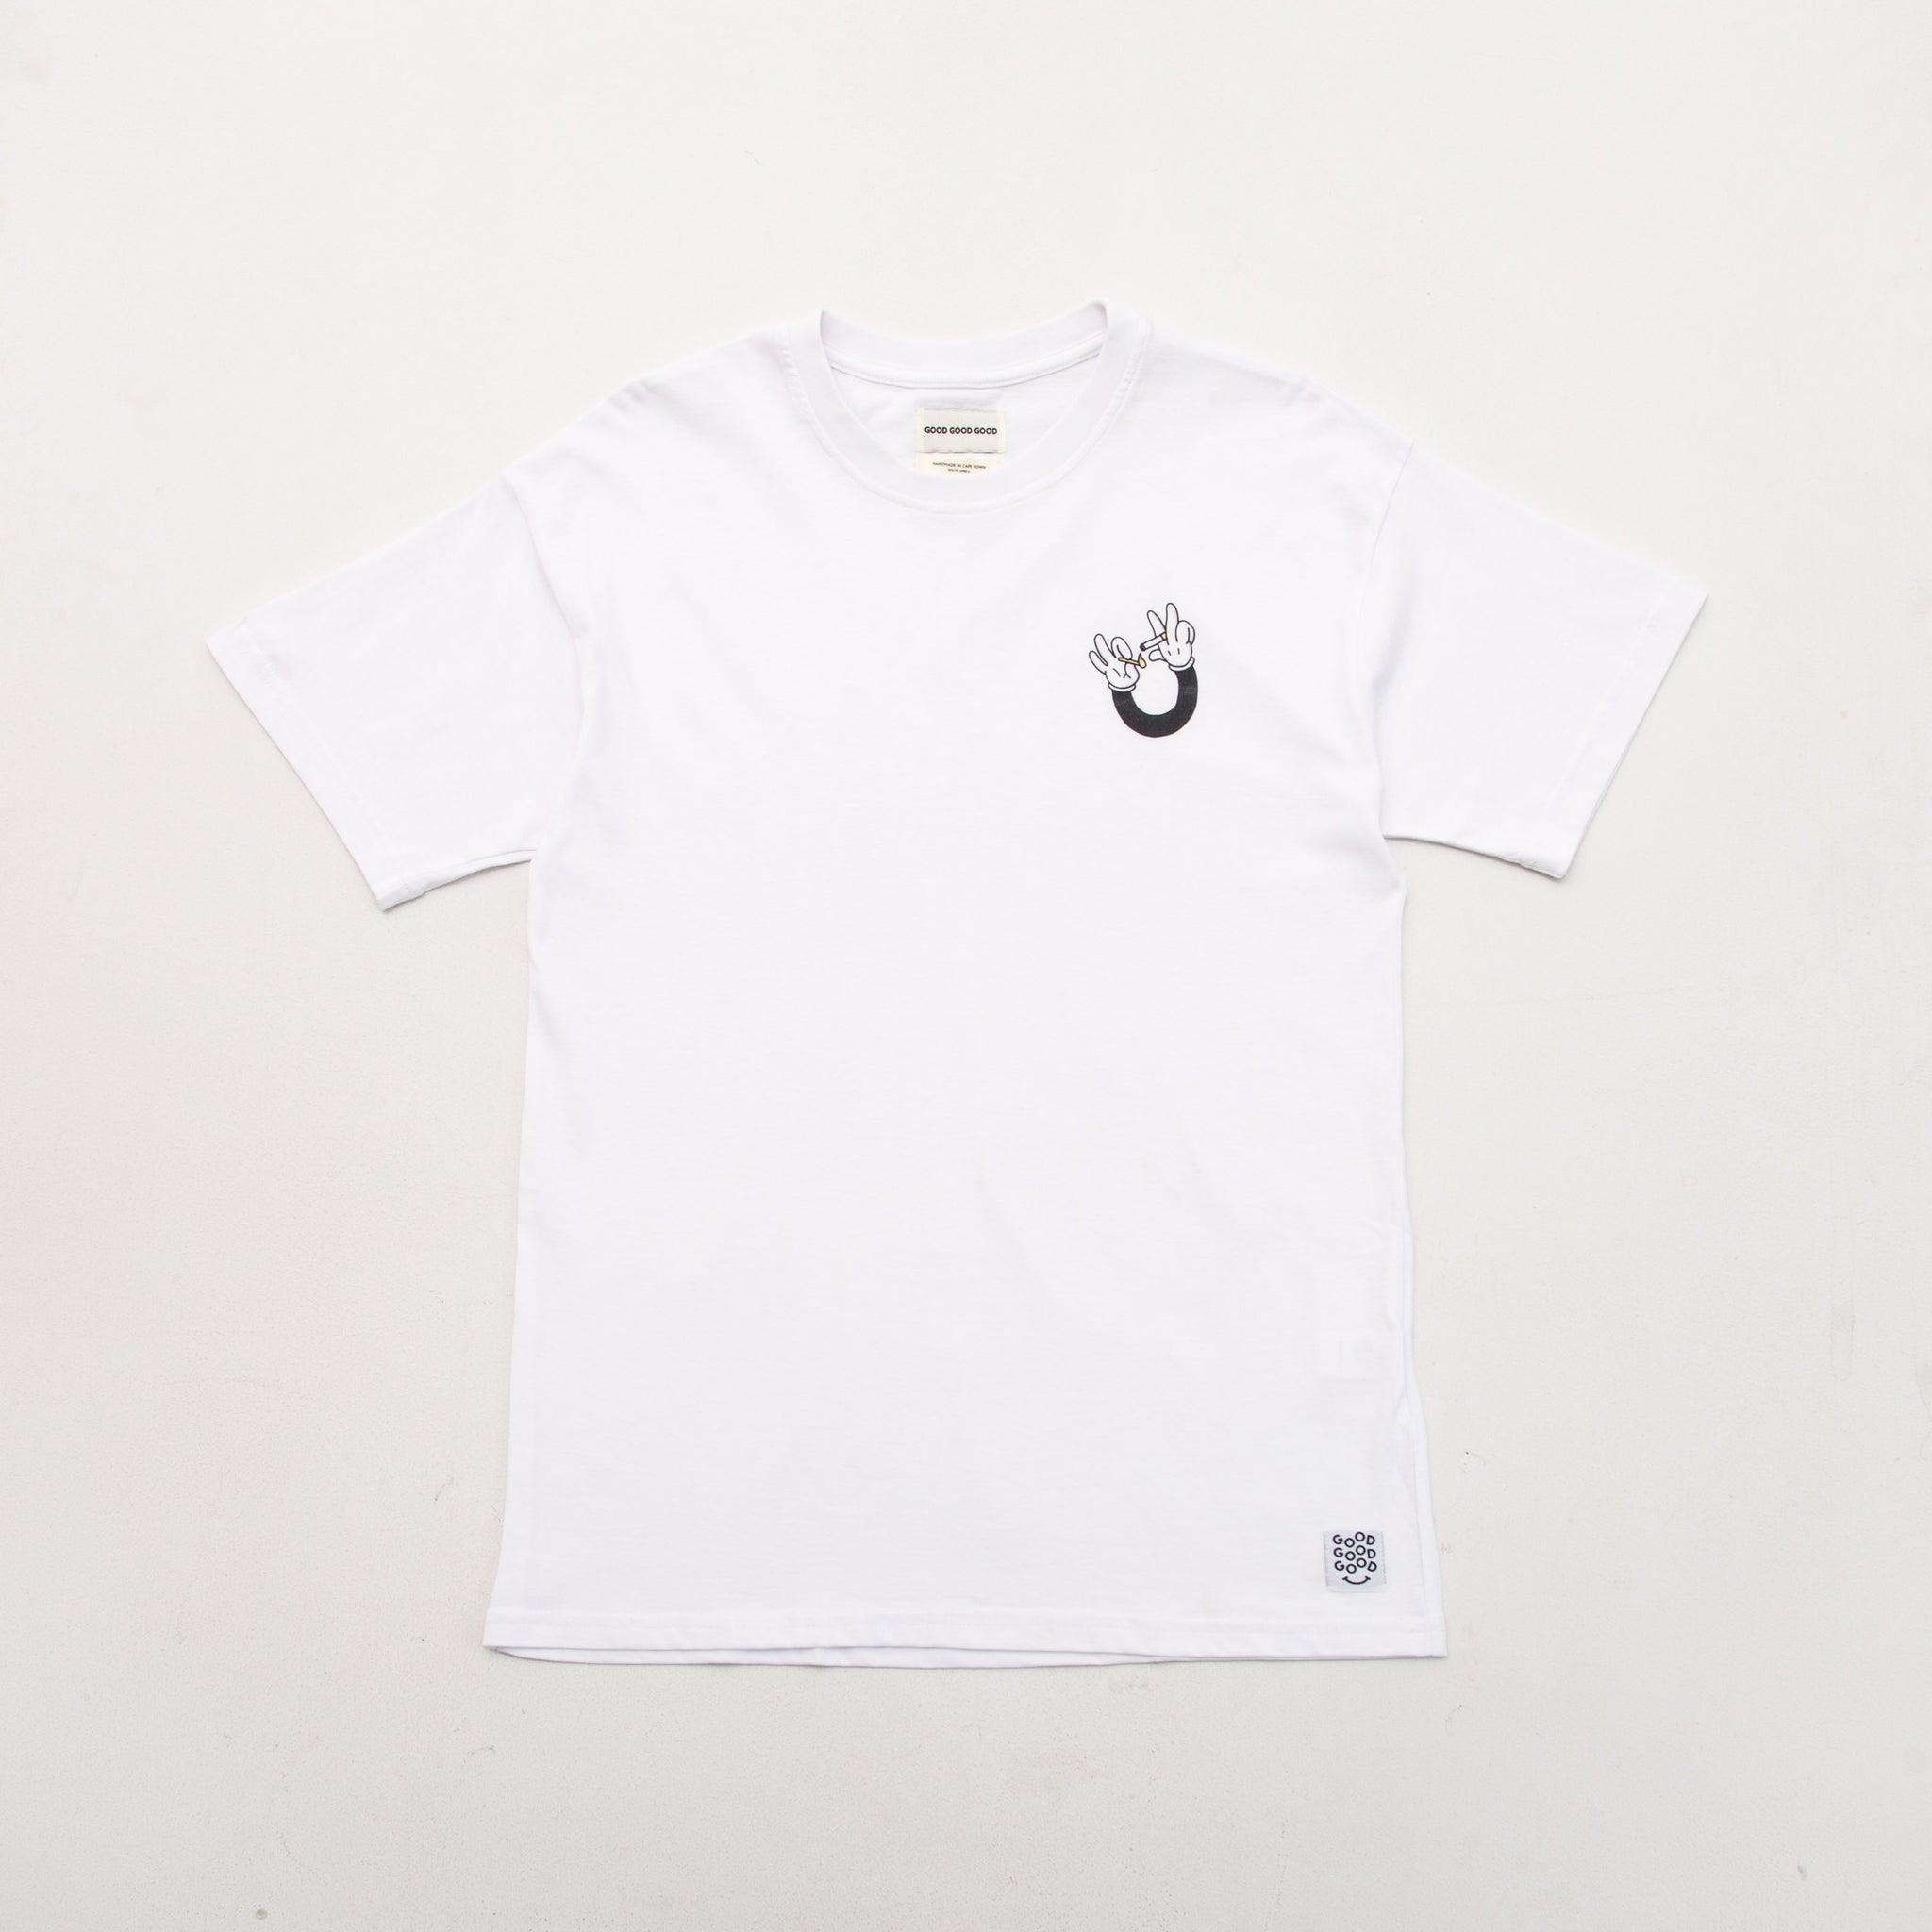 Smoke Hands Tee - White